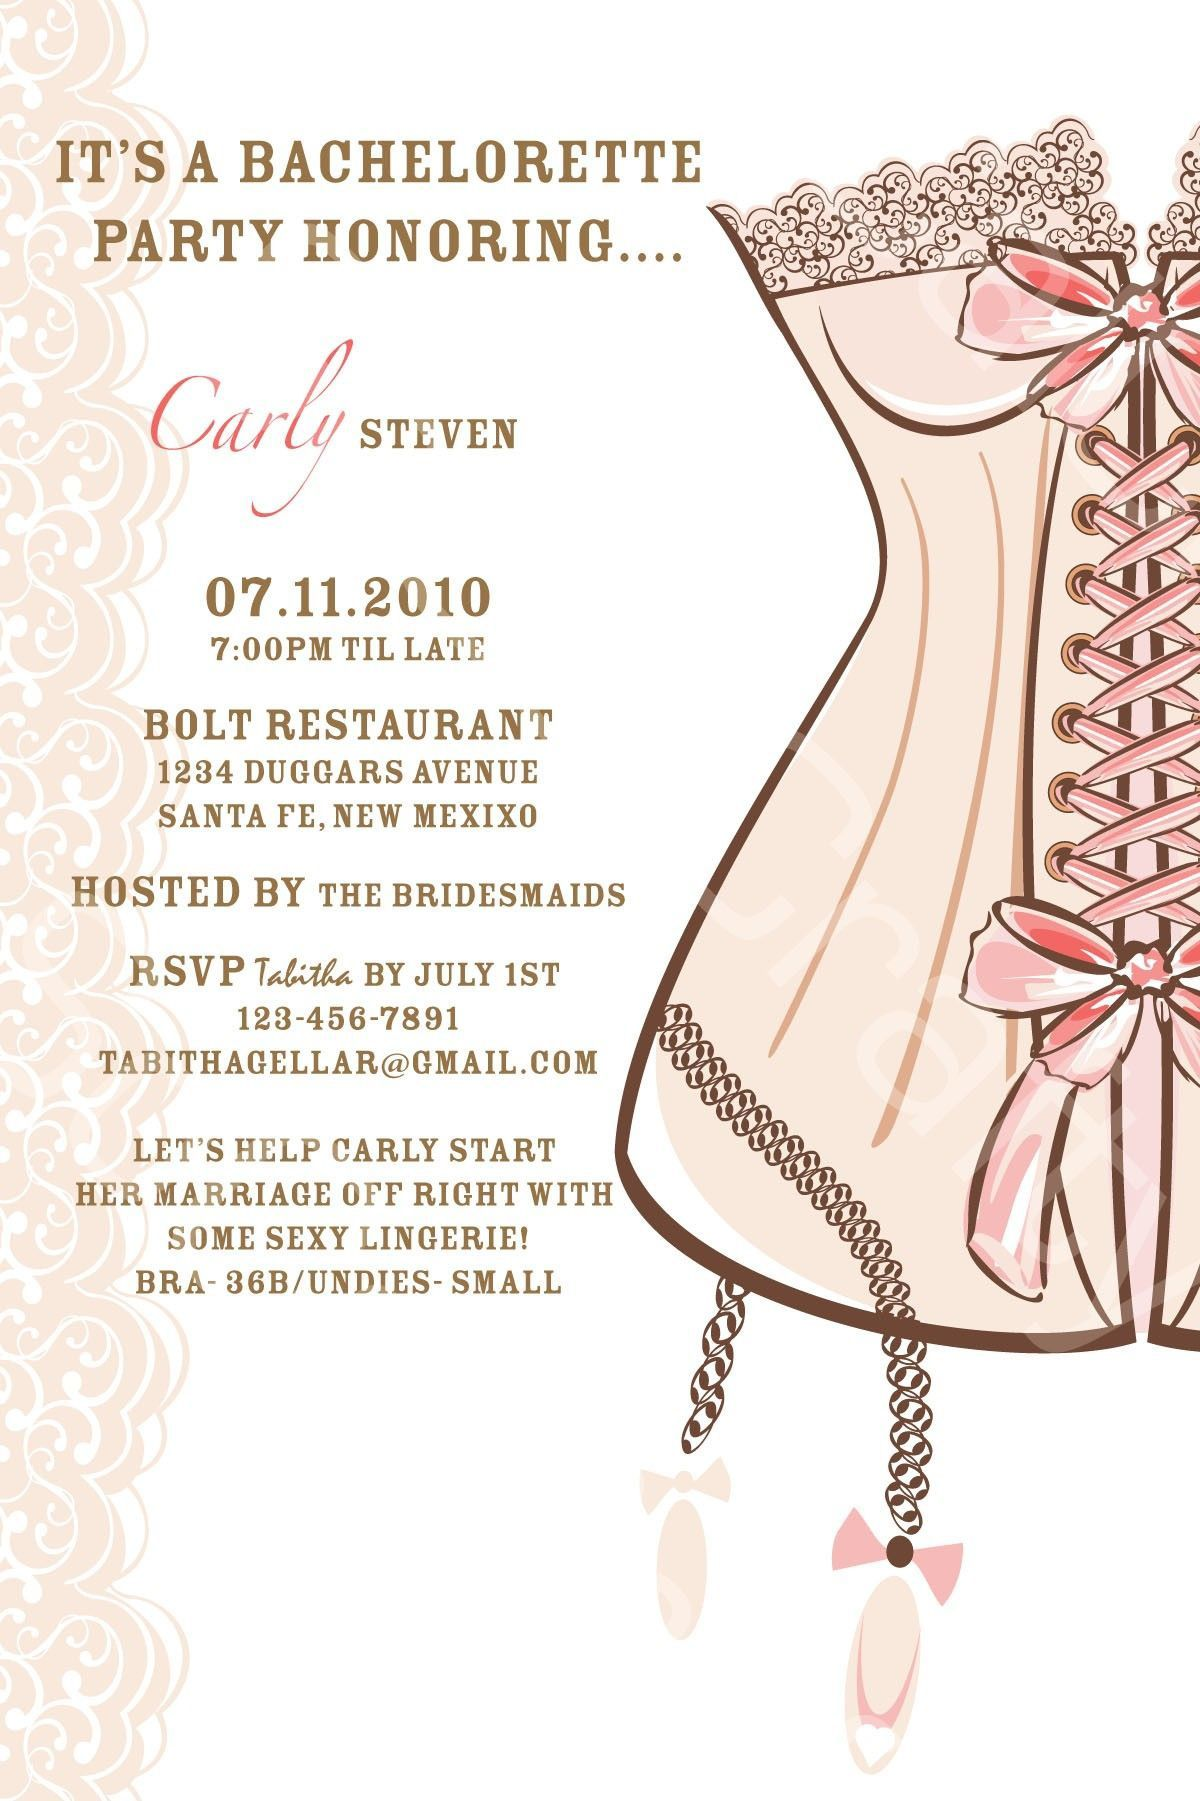 004 Fantastic Bachelorette Party Invitation Template Word Free High Definition Full